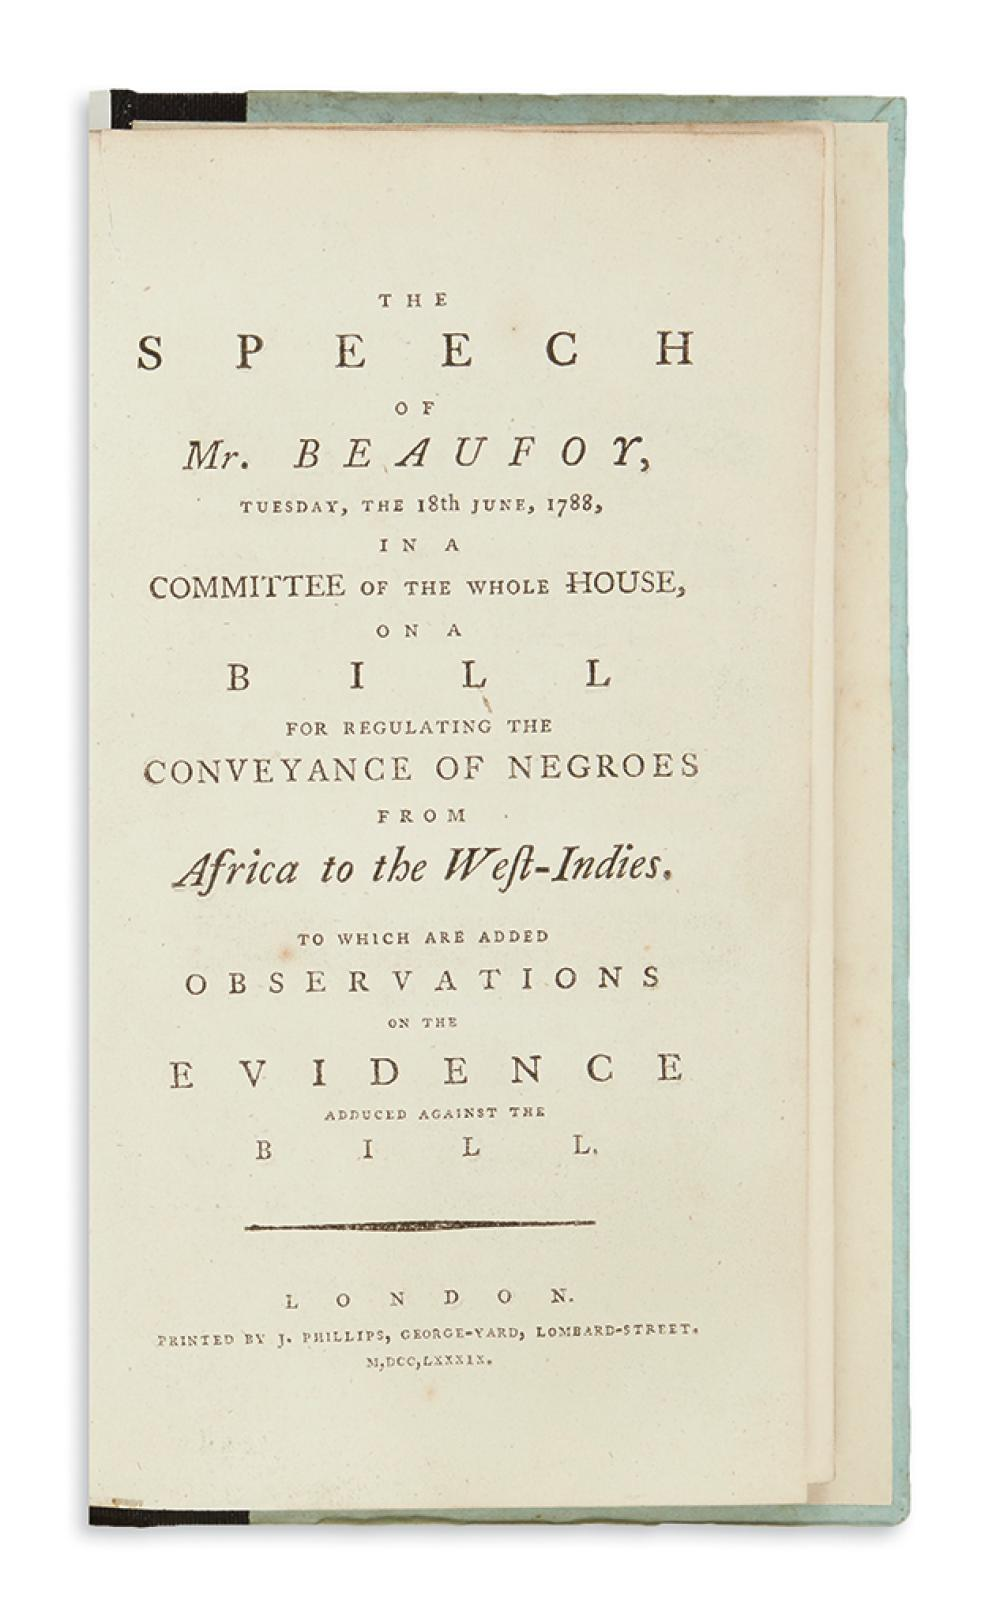 (SLAVERY AND ABOLITION.) Beaufoy, Henry. The Speech . . . on a Bill for Regulating the Conveyance of Negroes from Africa